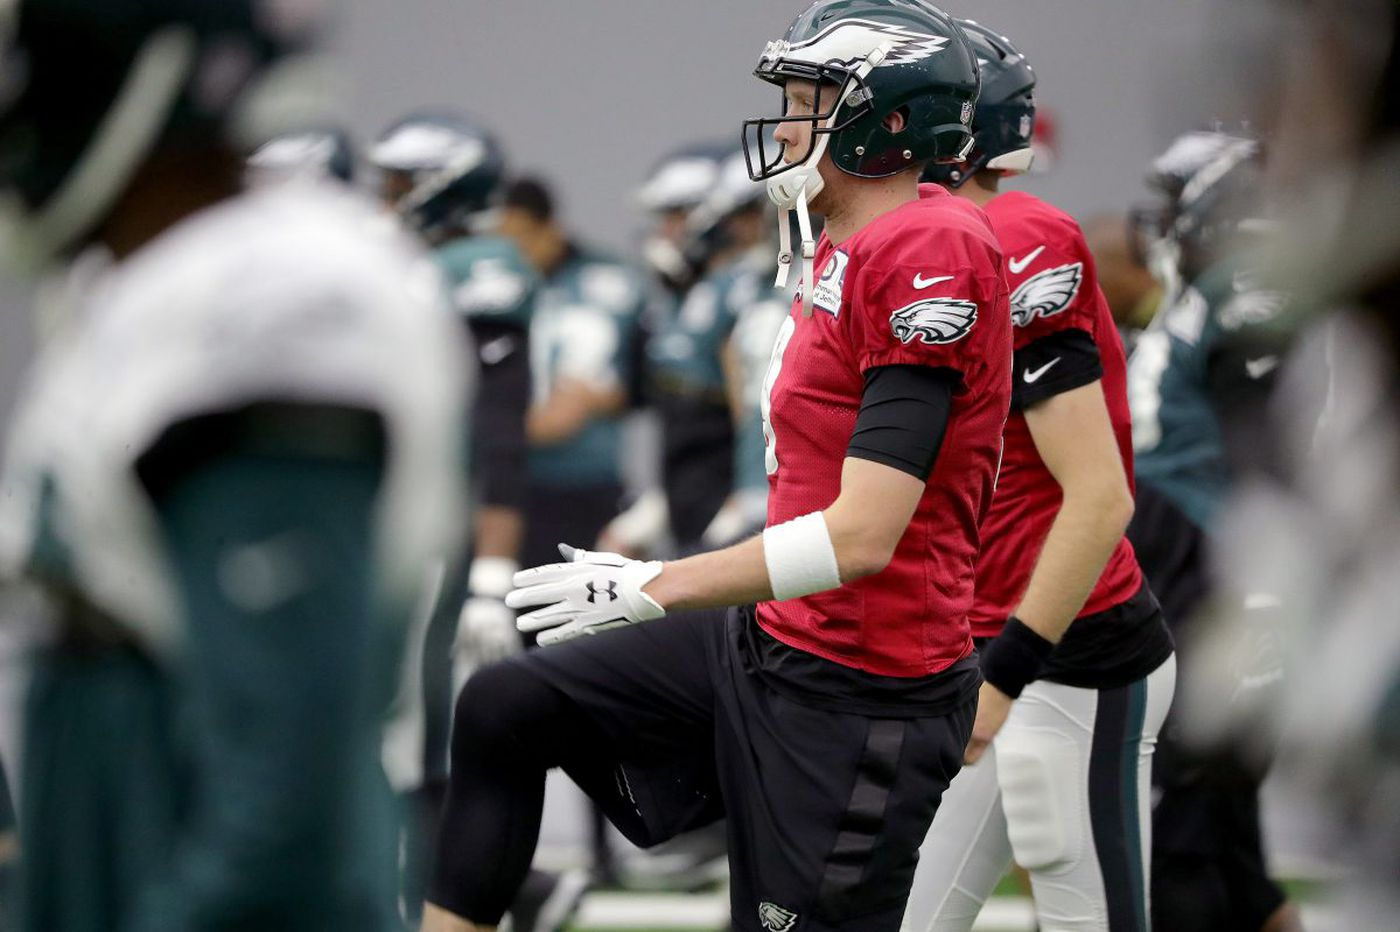 Eagles faithful should welcome Falcons | Marcus Hayes